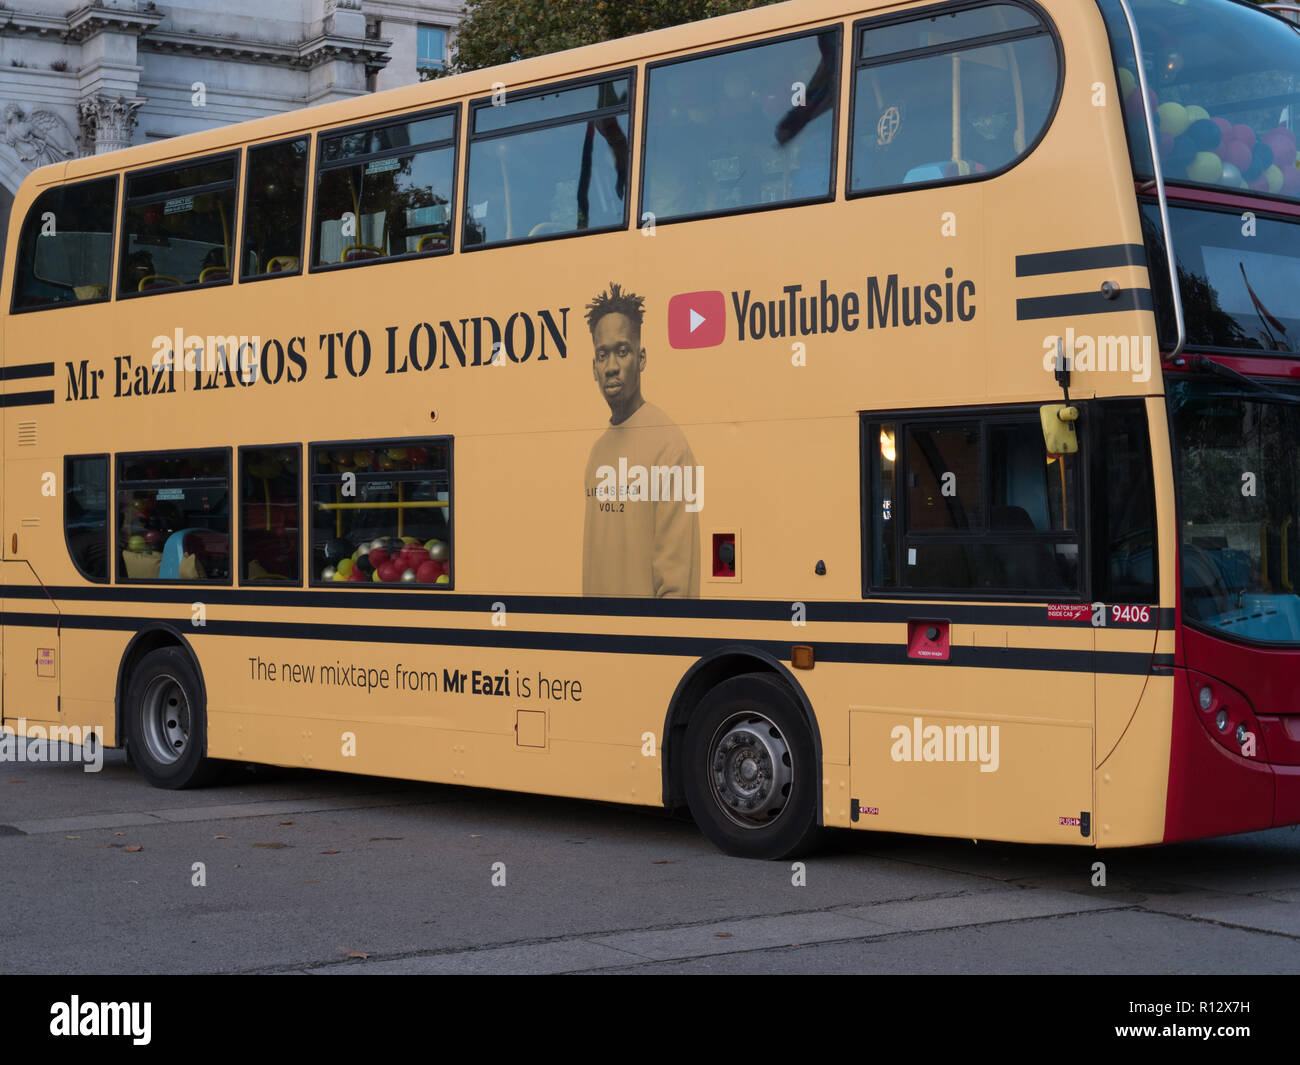 London, 8th November 2018. Mr Eazi, singer songwriter from Nigeria, with a tremendous following and viewing on YouTube is releasing the album 'Lagos to London' on 9th November. The mixtape has 15 tracks of African tradition, Afrobeat and R&B. The celebration of the new record starting at Marble Arch today. Credit: Joe Kuis / Alamy Live News - Stock Image